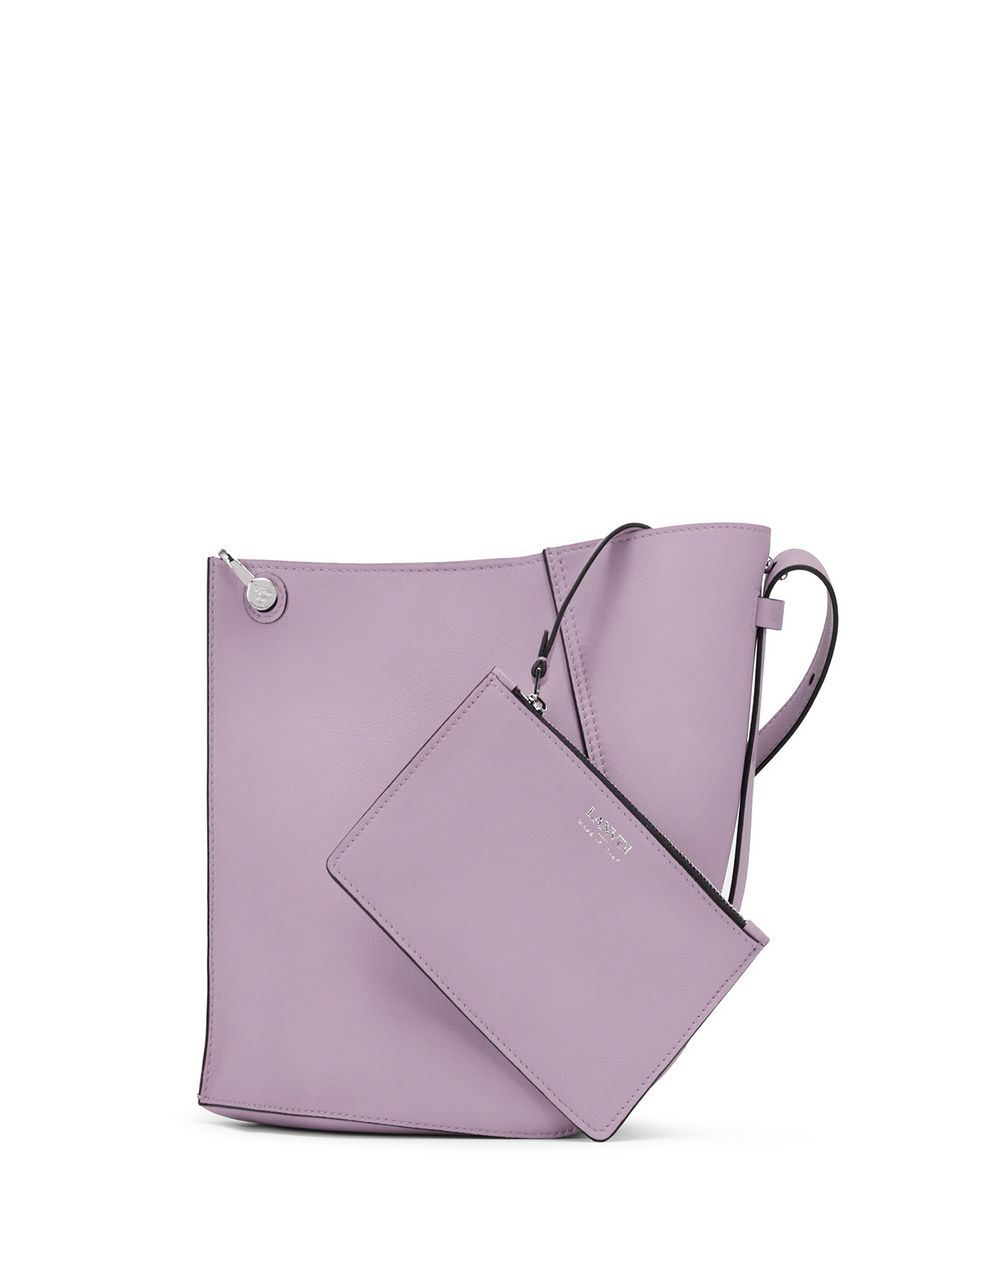 HOOK BAG MEDIUM - Lanvin